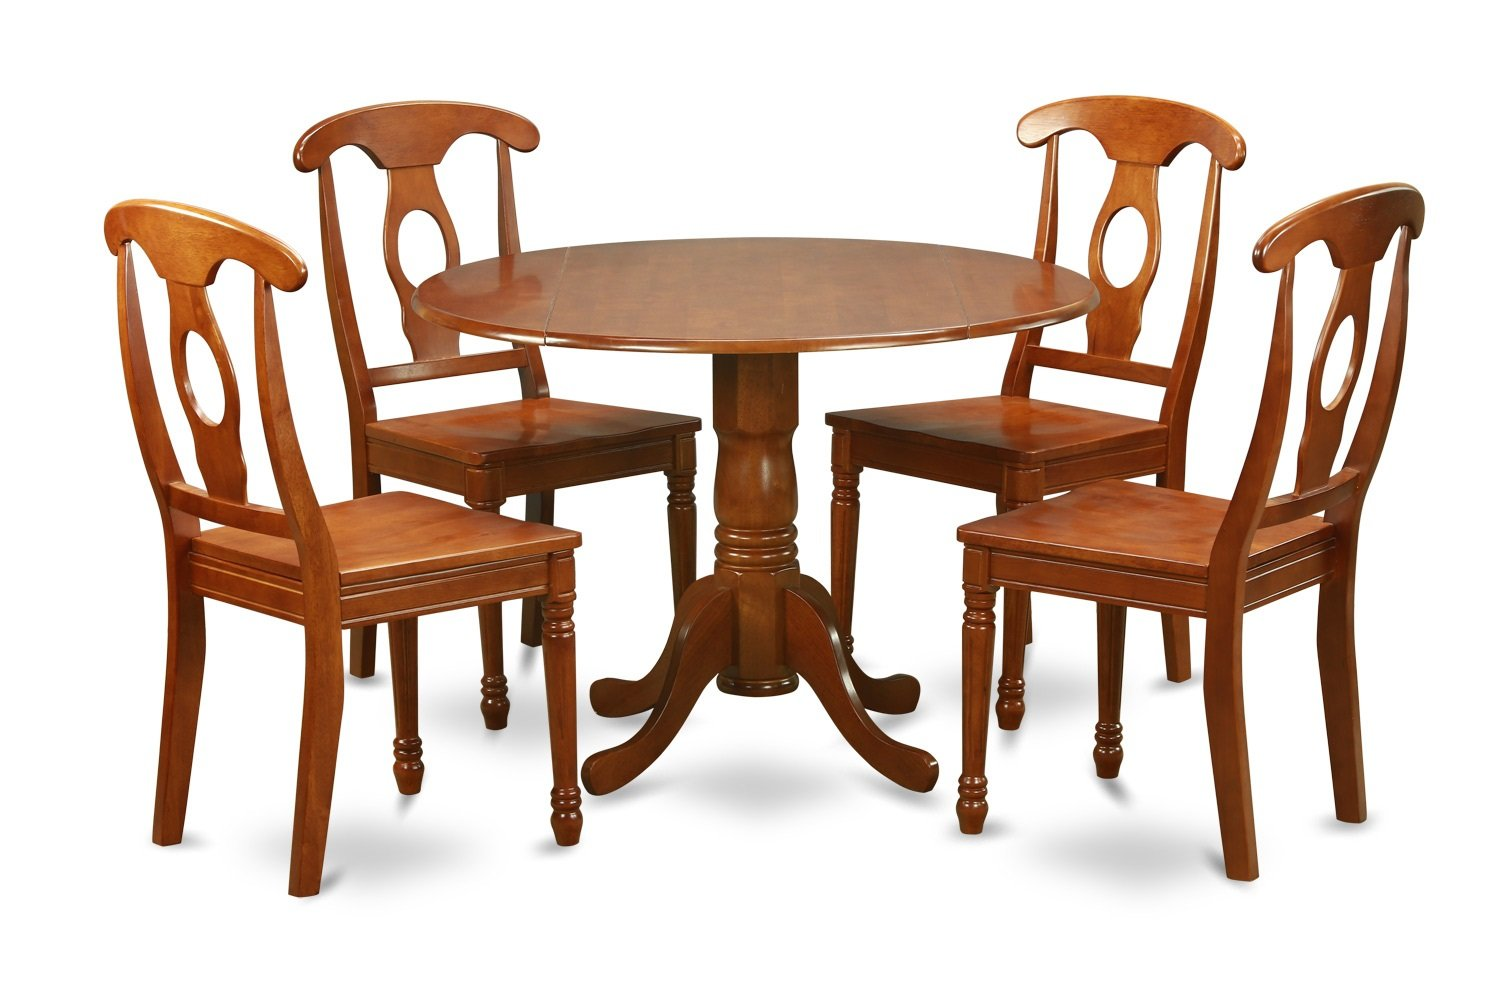 dining table and chairs dublin geri chair recliner cushion geo wave 5pc round w 2 drop leaves 434 napoleon wood